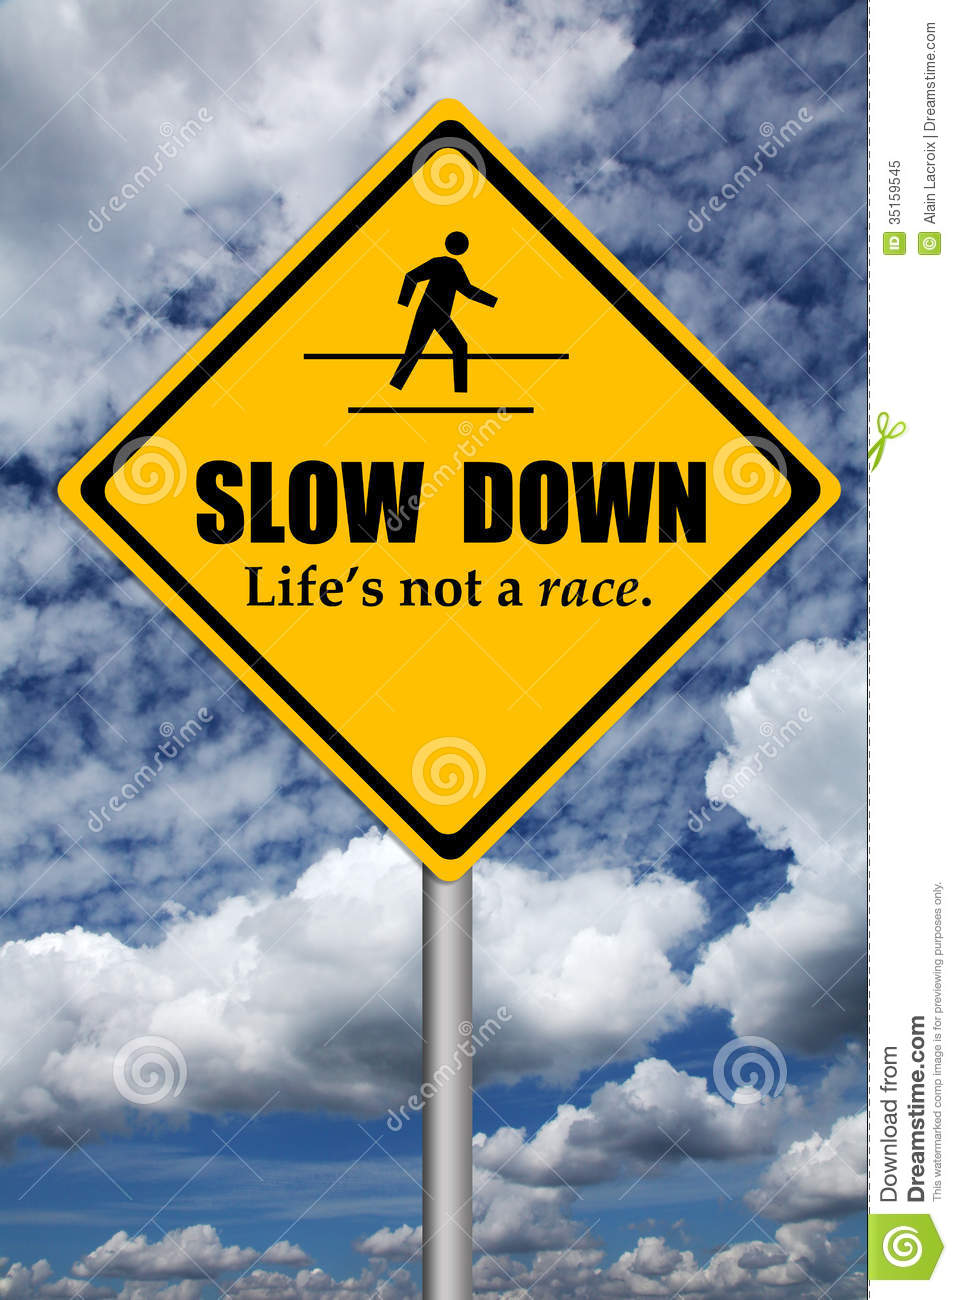 Slow Down Royalty Free Stock Photo Image 35159545